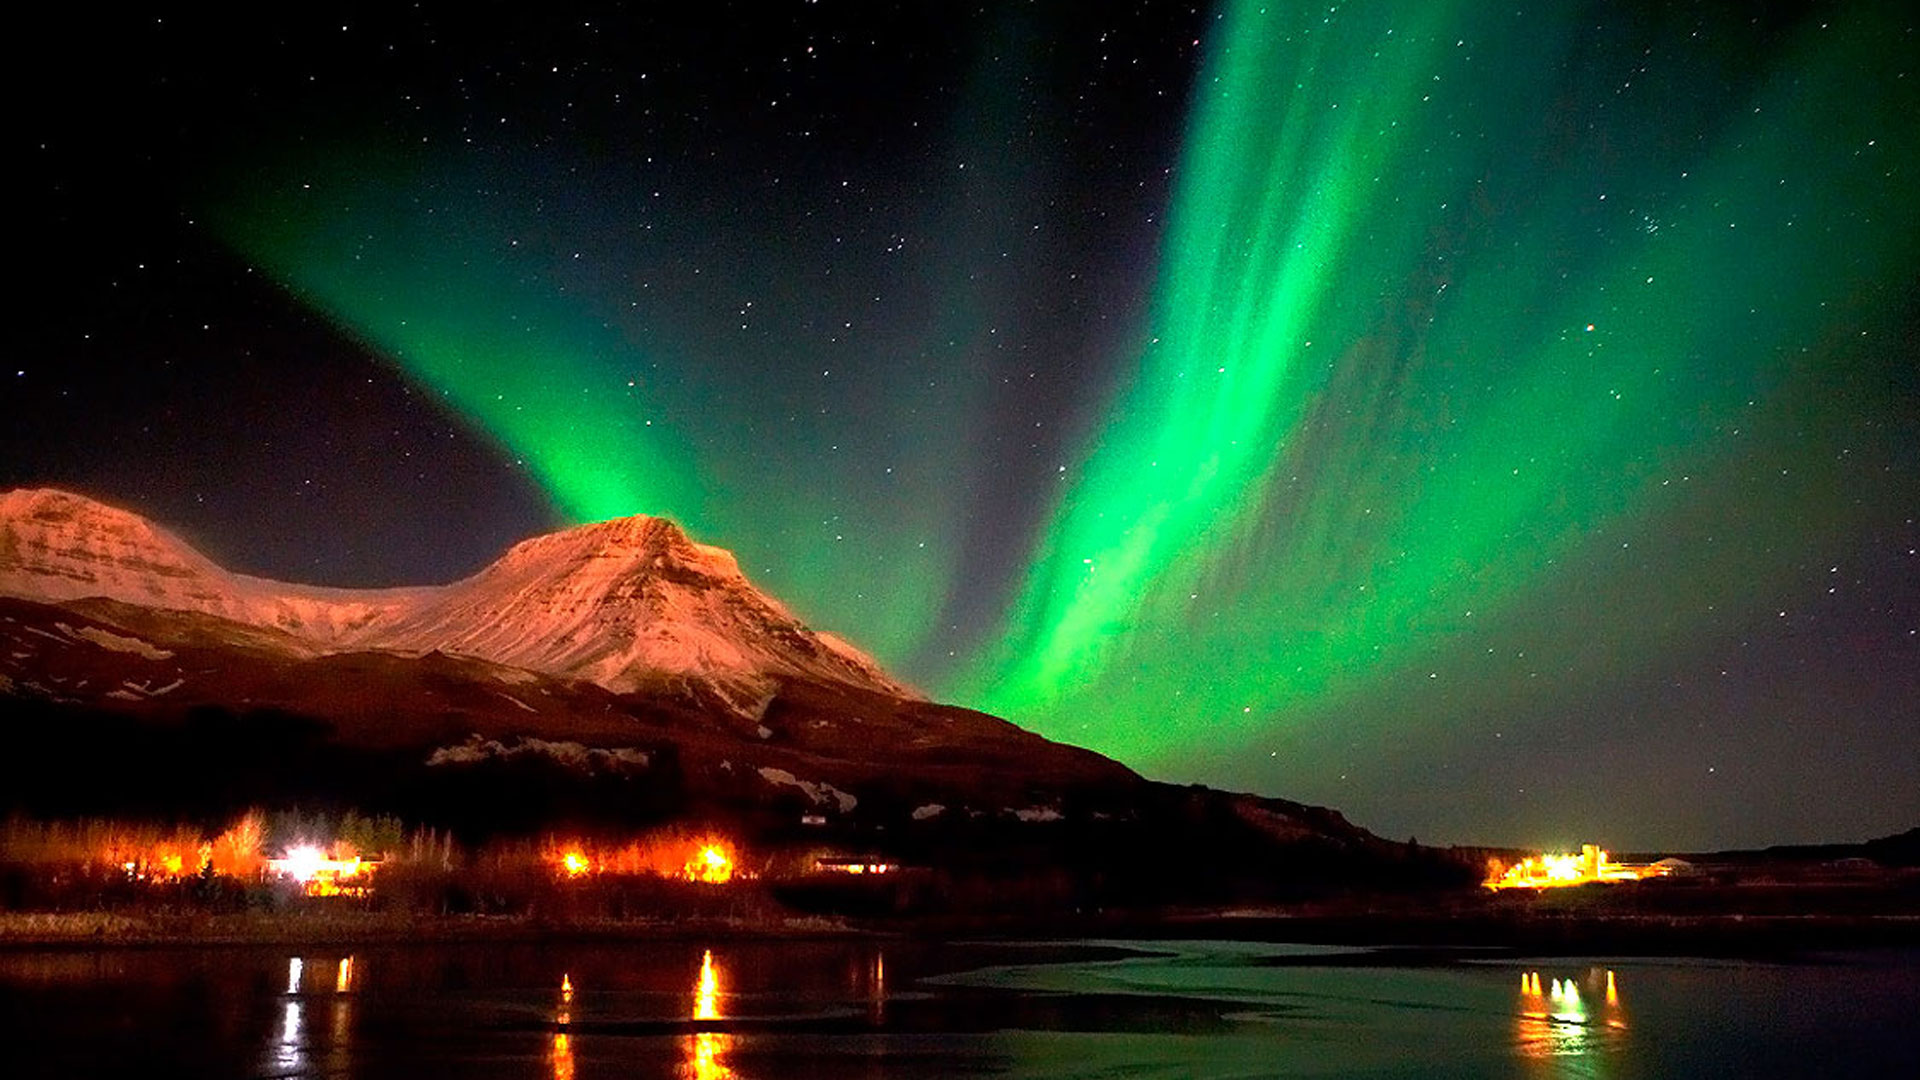 Northern-Lights-Tumblr-Photo-Wallpaper-HD-Resolution